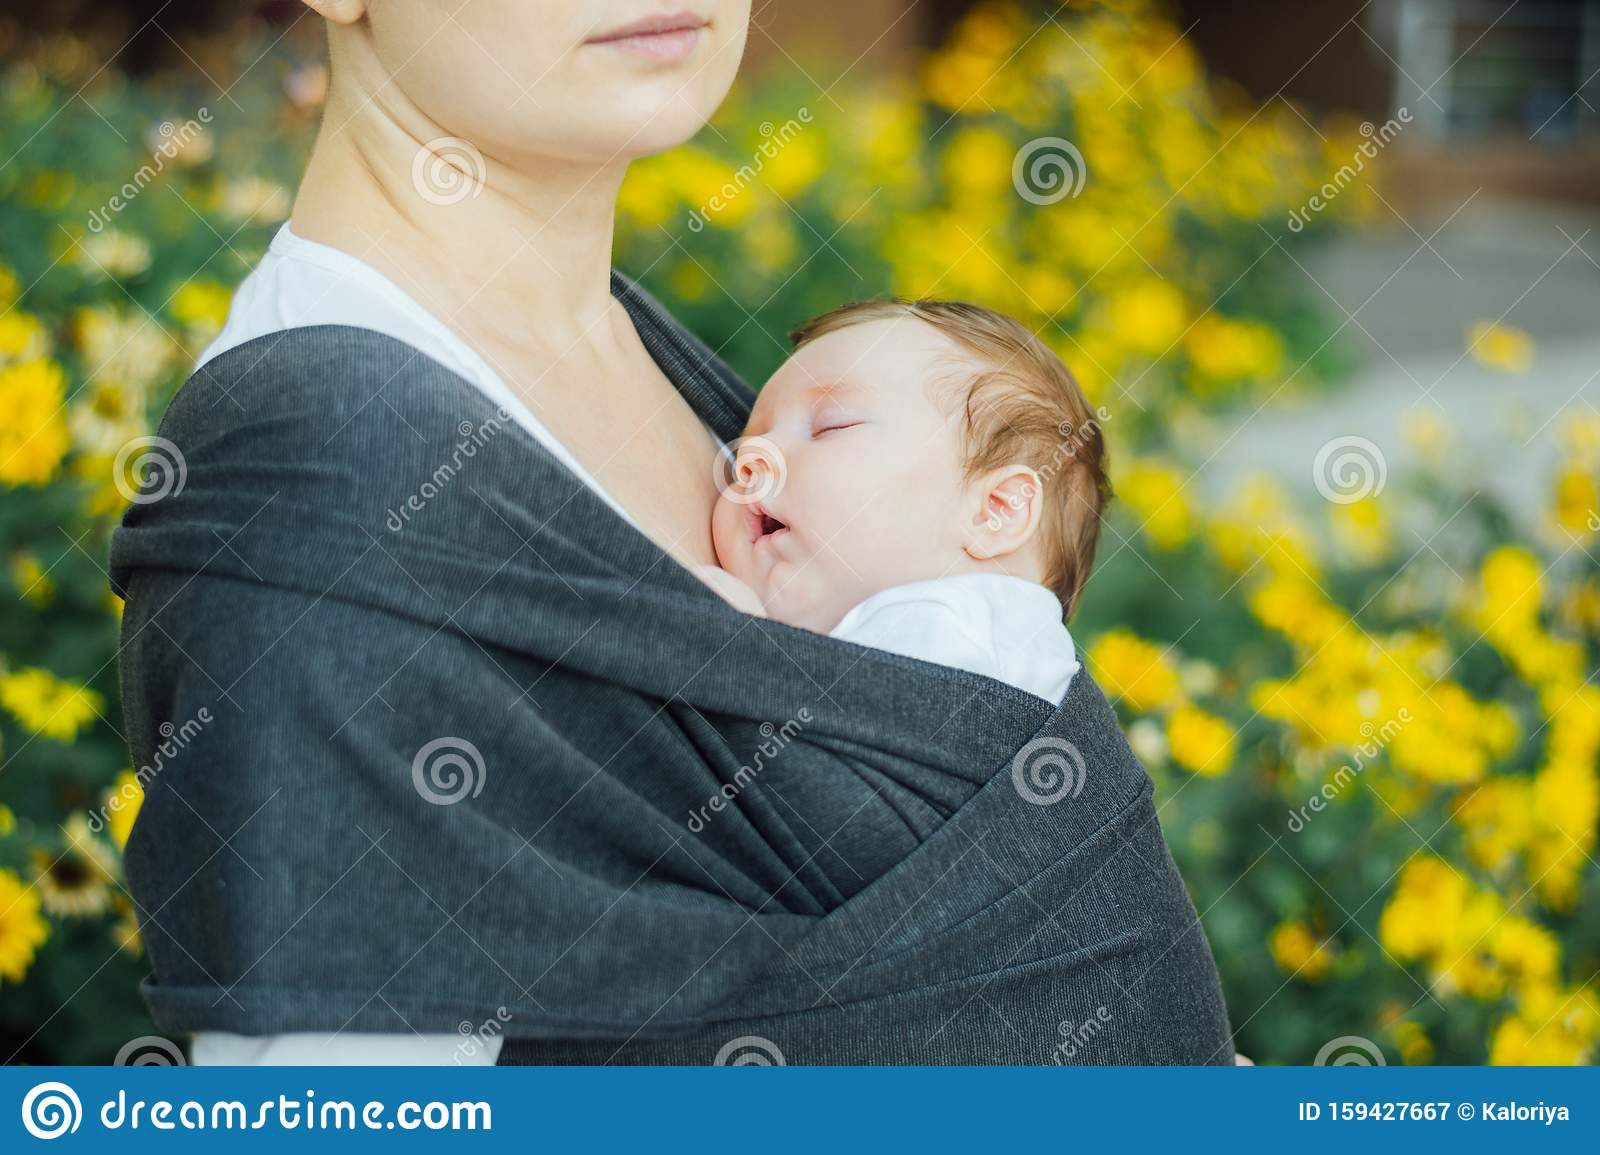 Young mother, holding her newborn baby boy - Blog